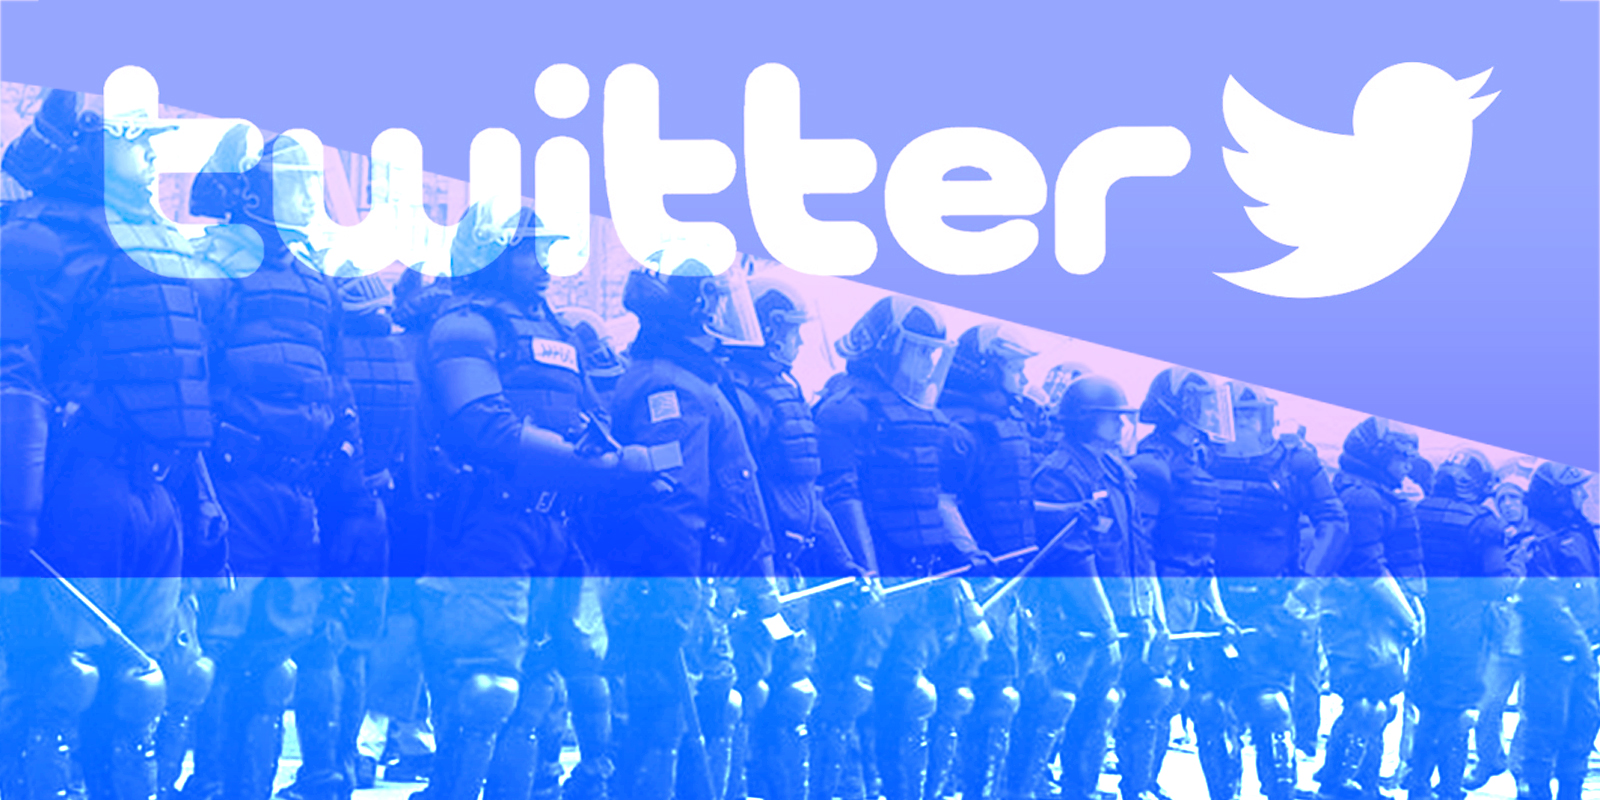 MEME POLICE: Twitter announces crackdown on memes